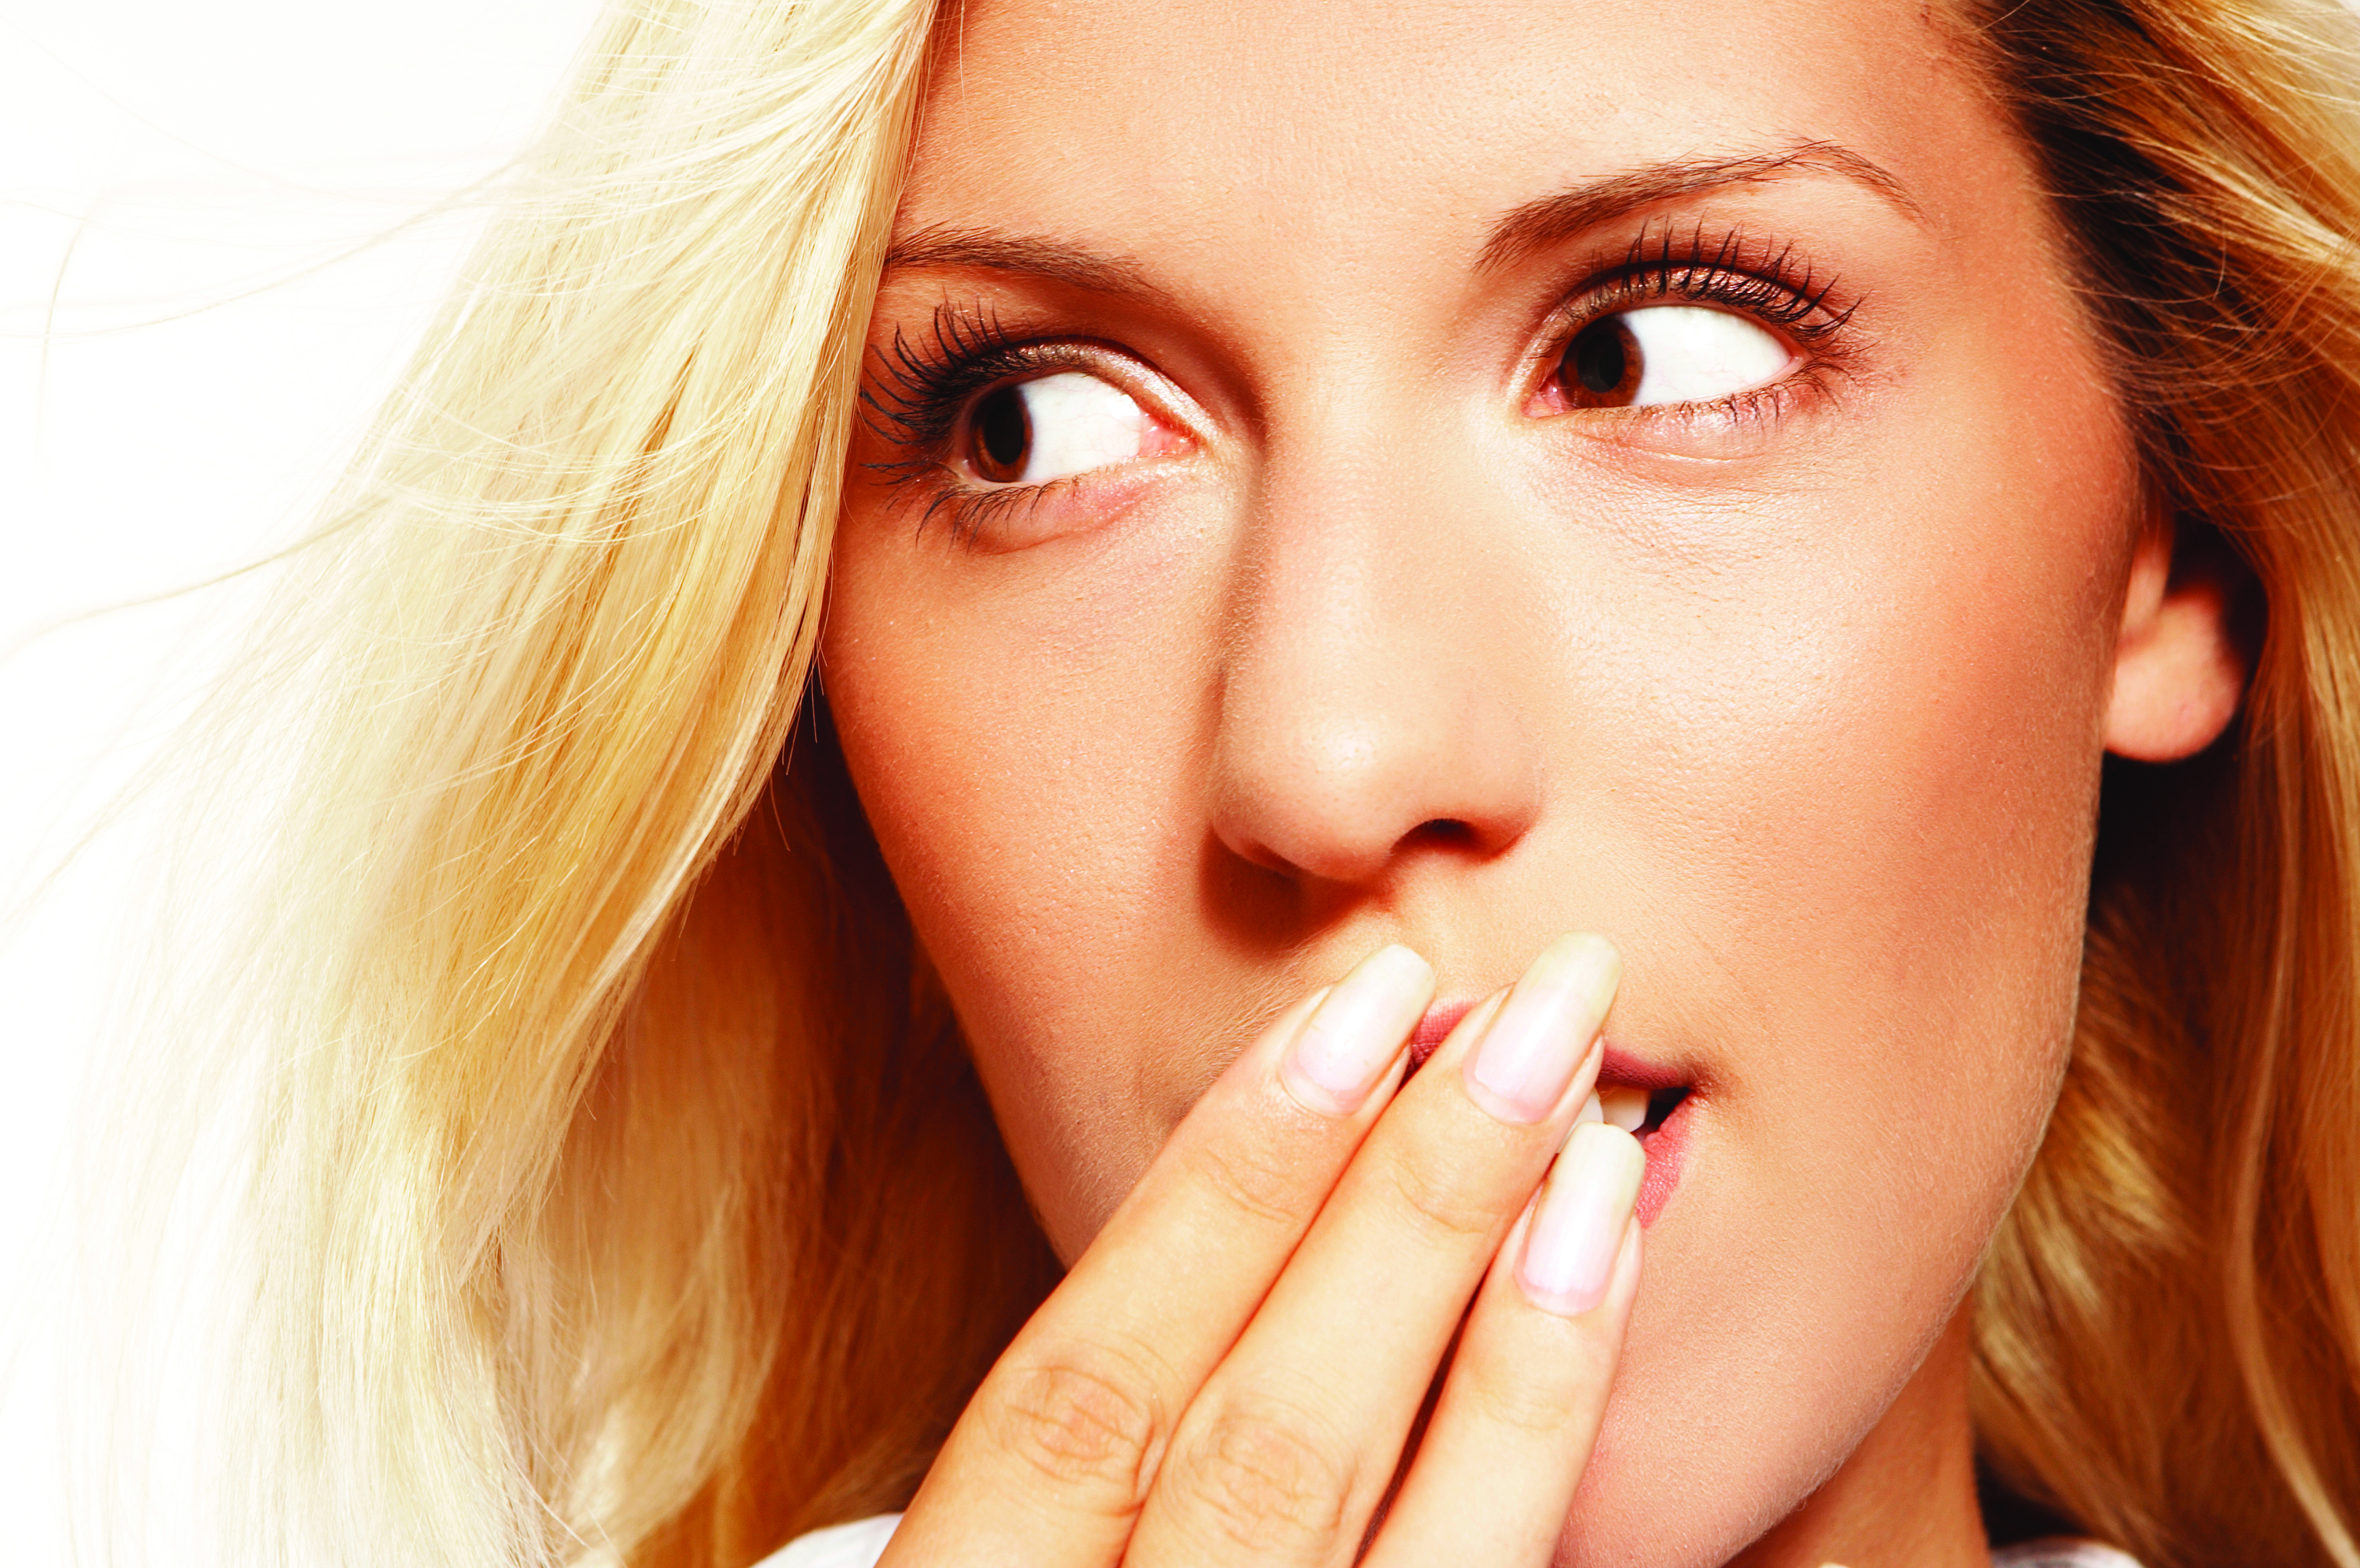 Woman hiding teeth-2.jpg